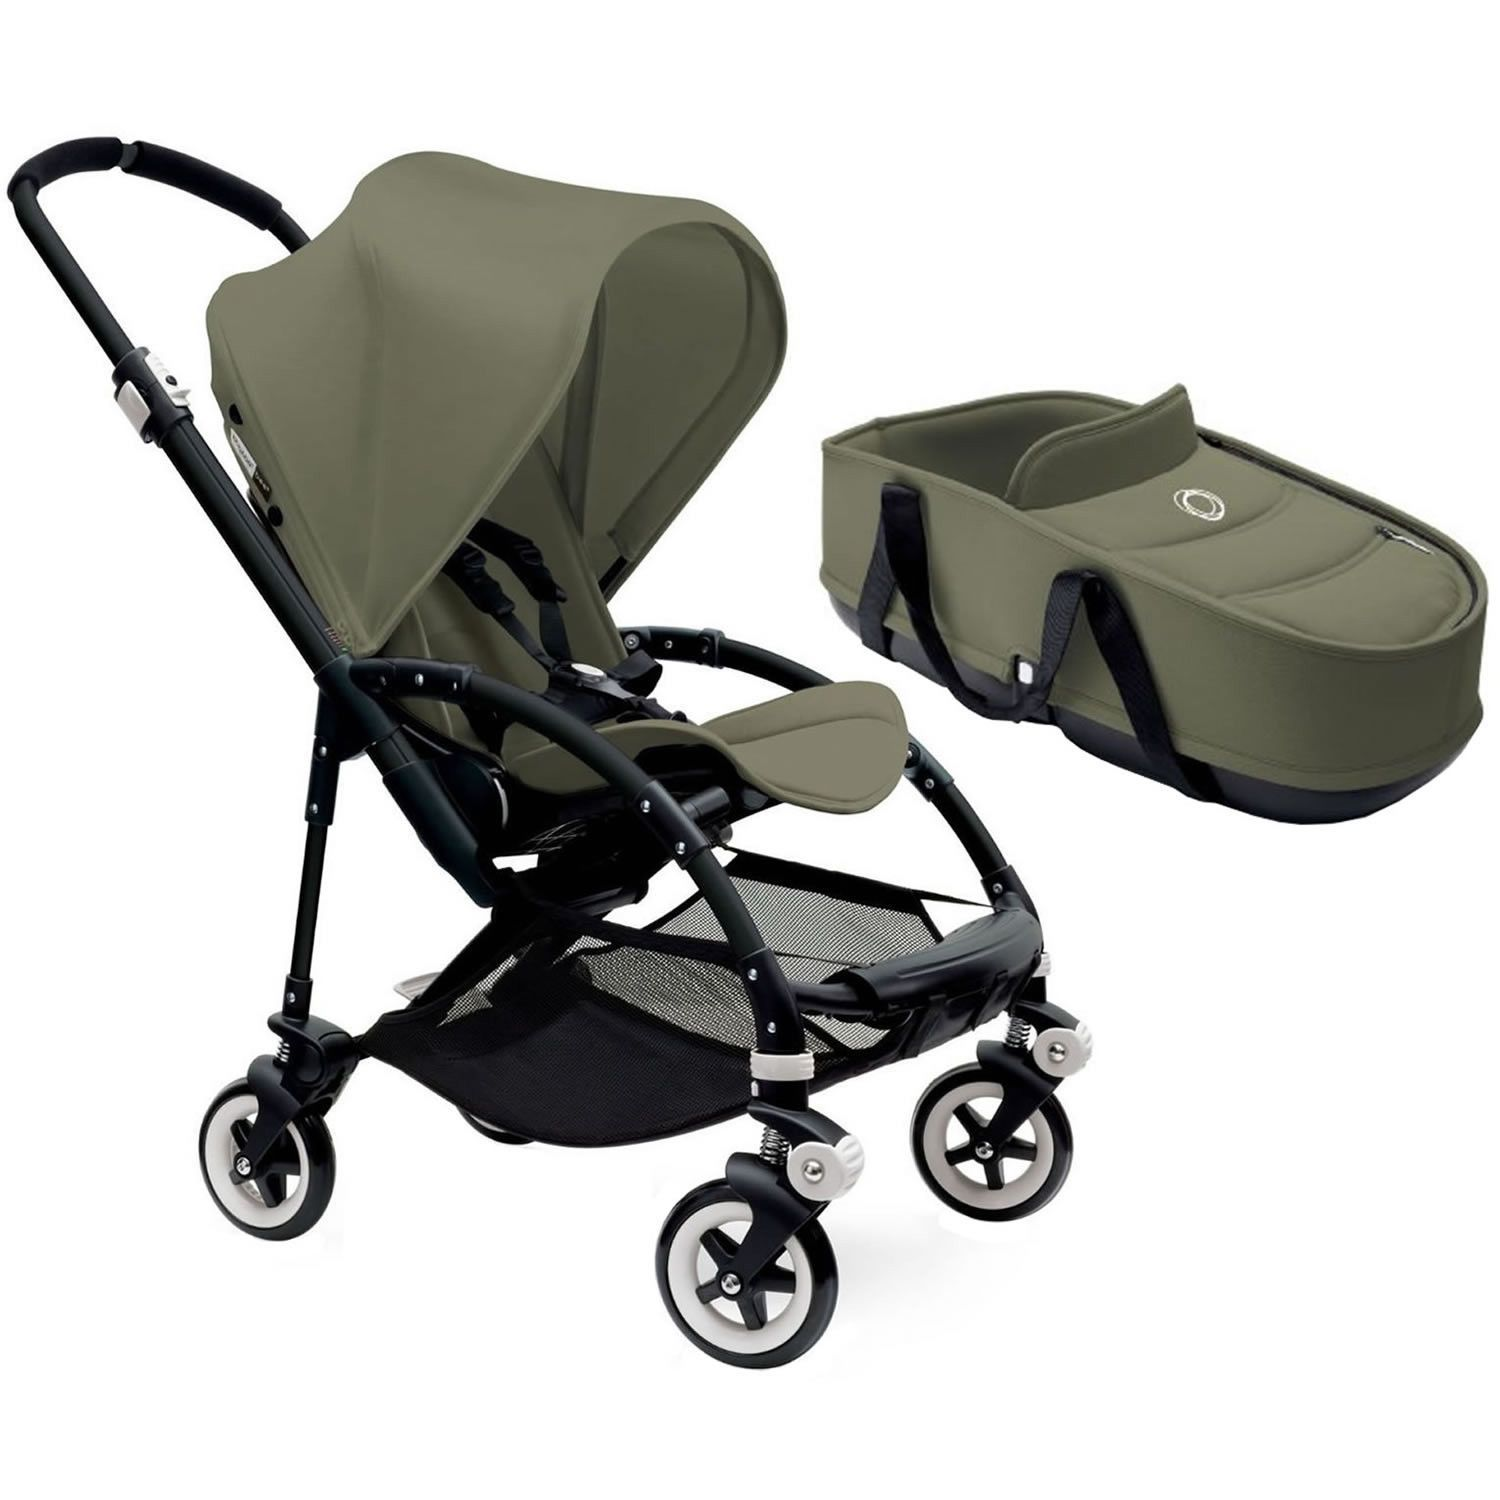 Designed specifically for parents who live life on the fly